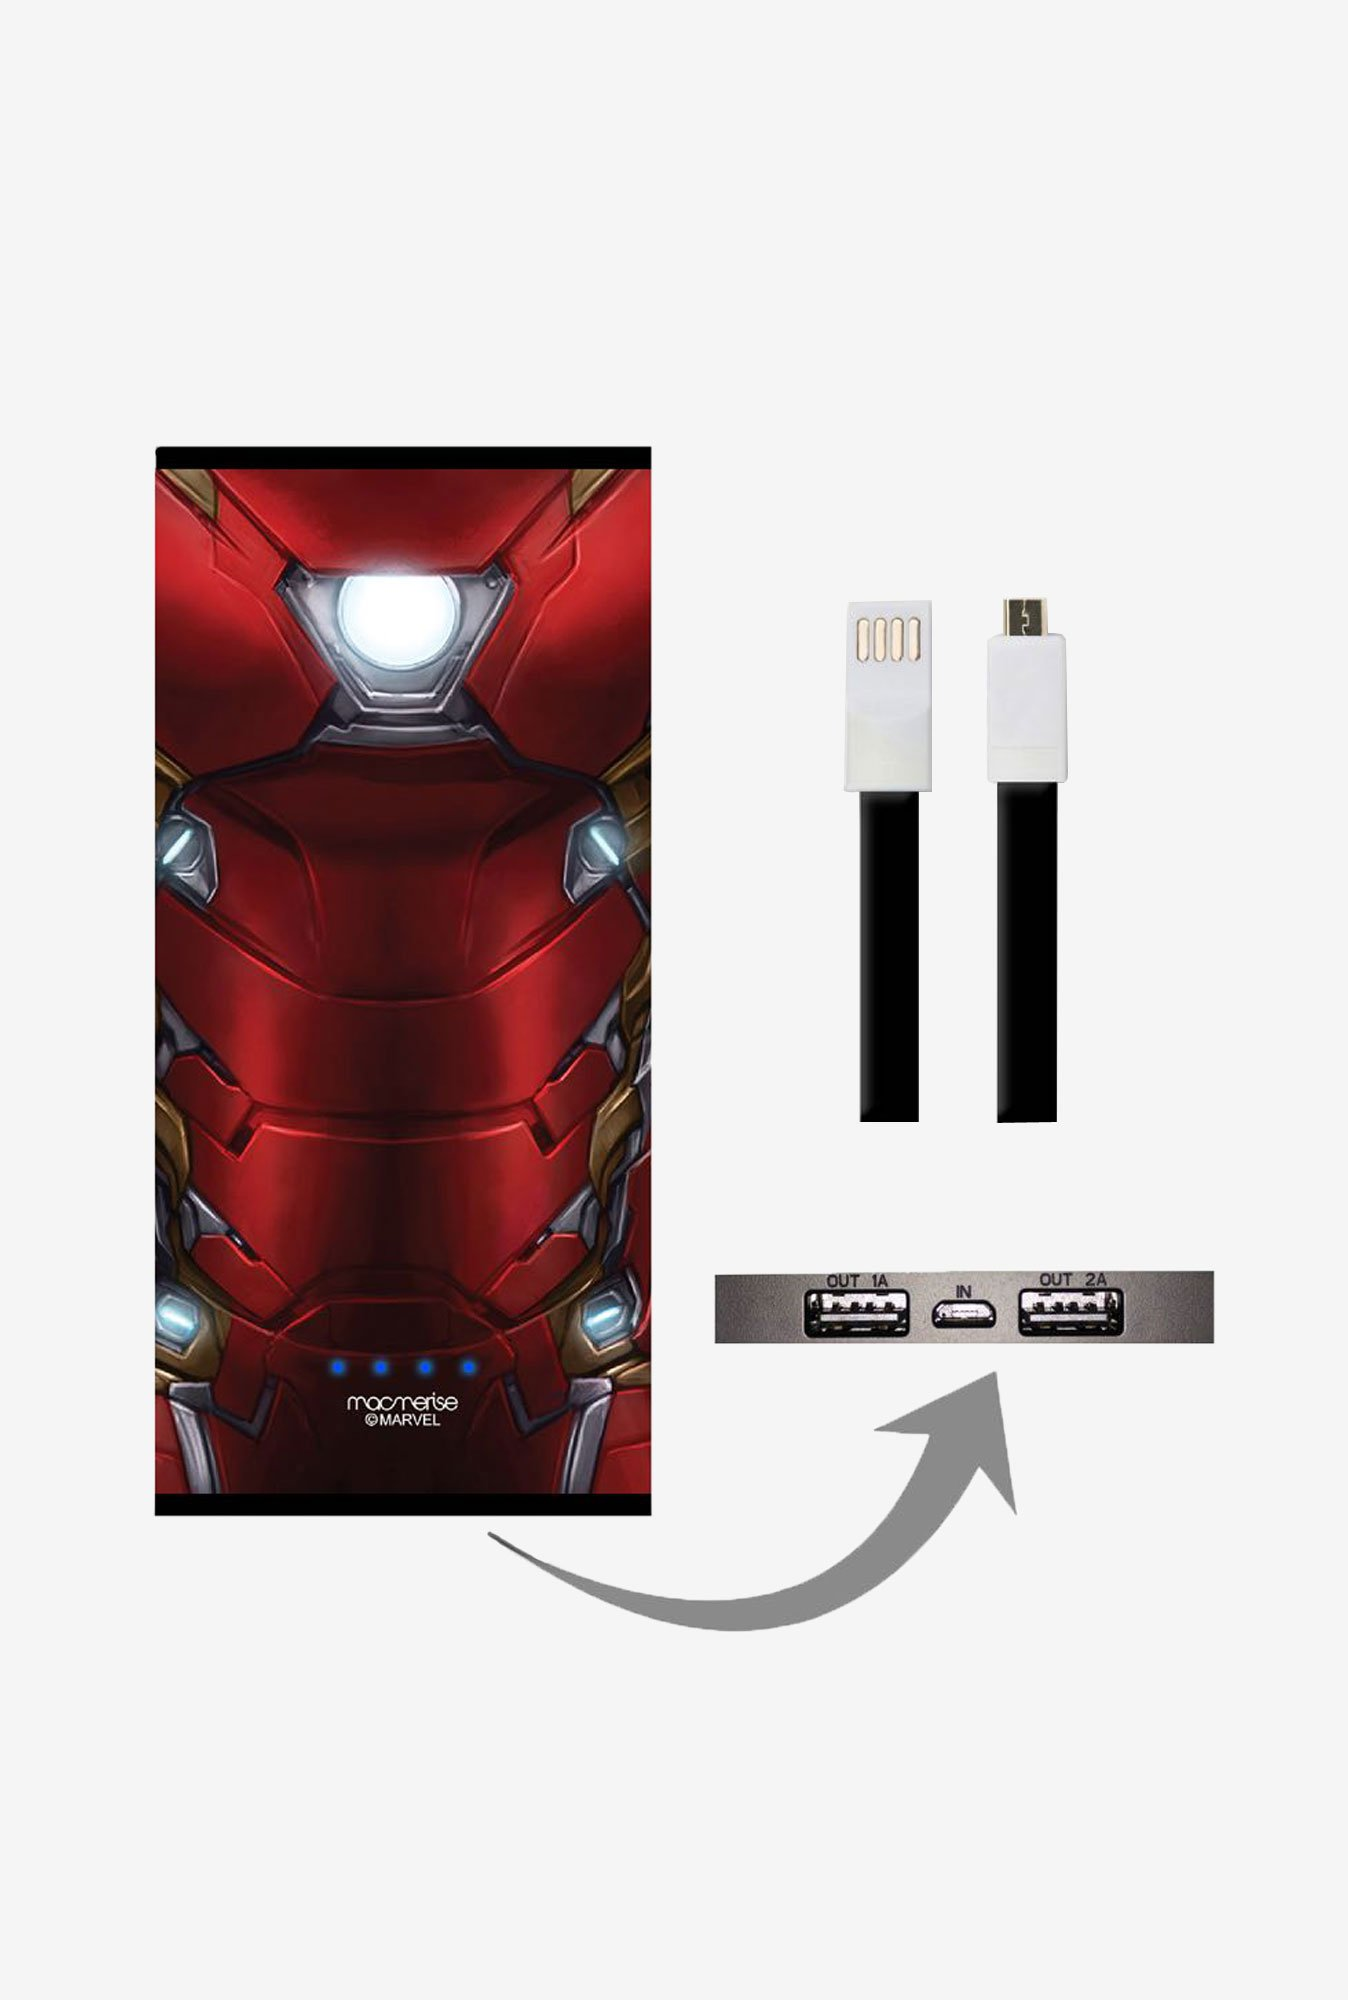 Macmerise Suit Up Ironman 8000 mAh Universal Power Bank